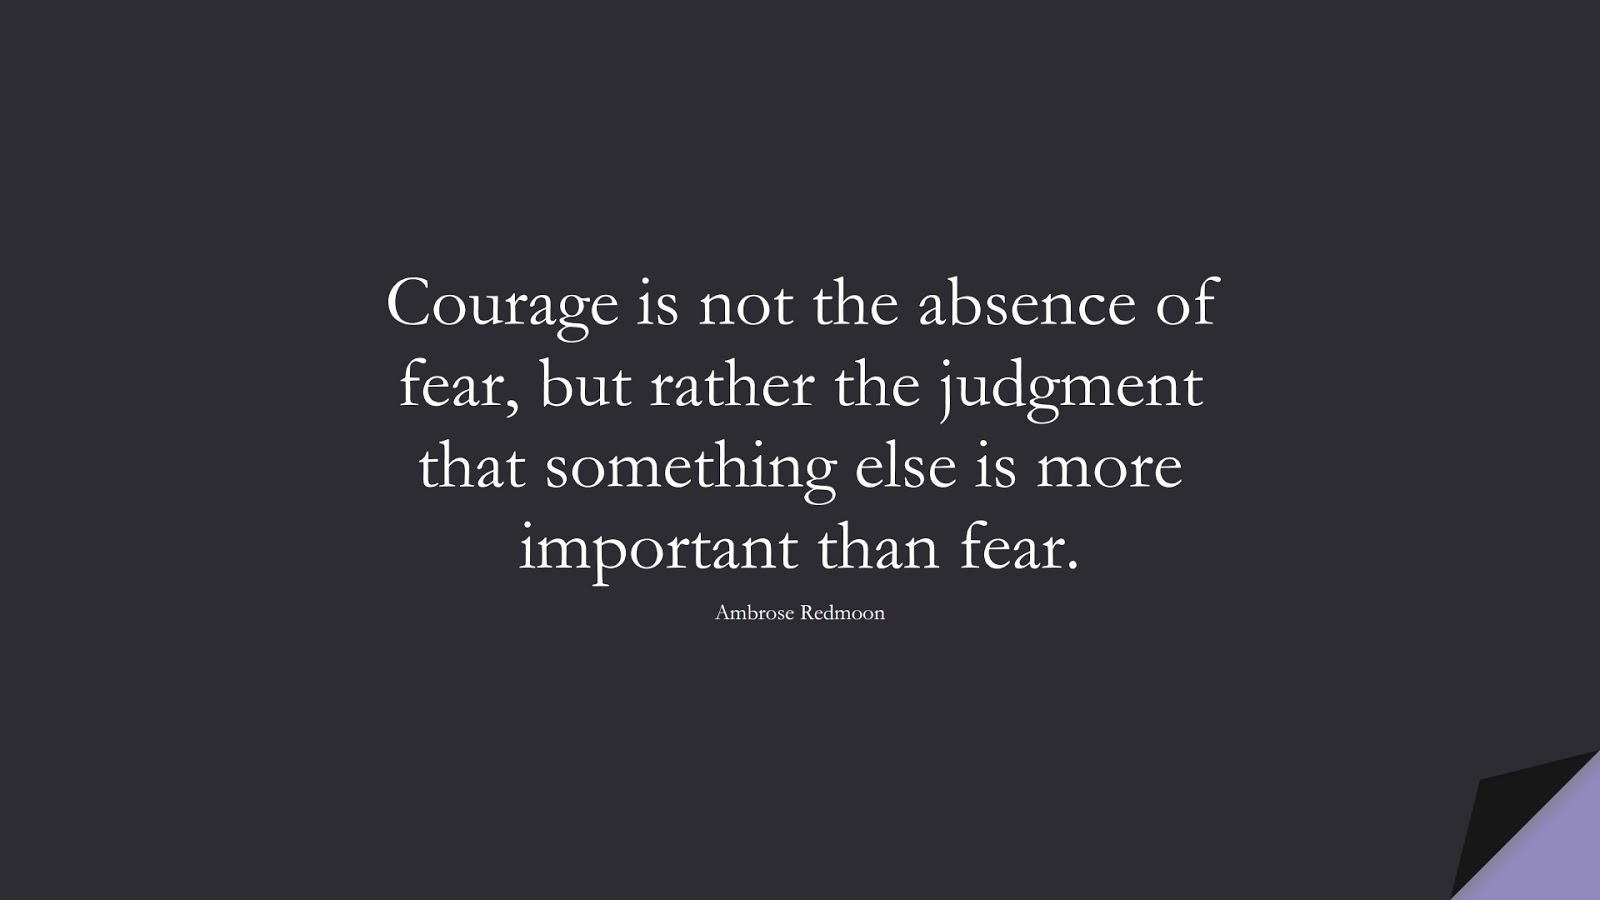 Courage is not the absence of fear, but rather the judgment that something else is more important than fear. (Ambrose Redmoon);  #FearQuotes